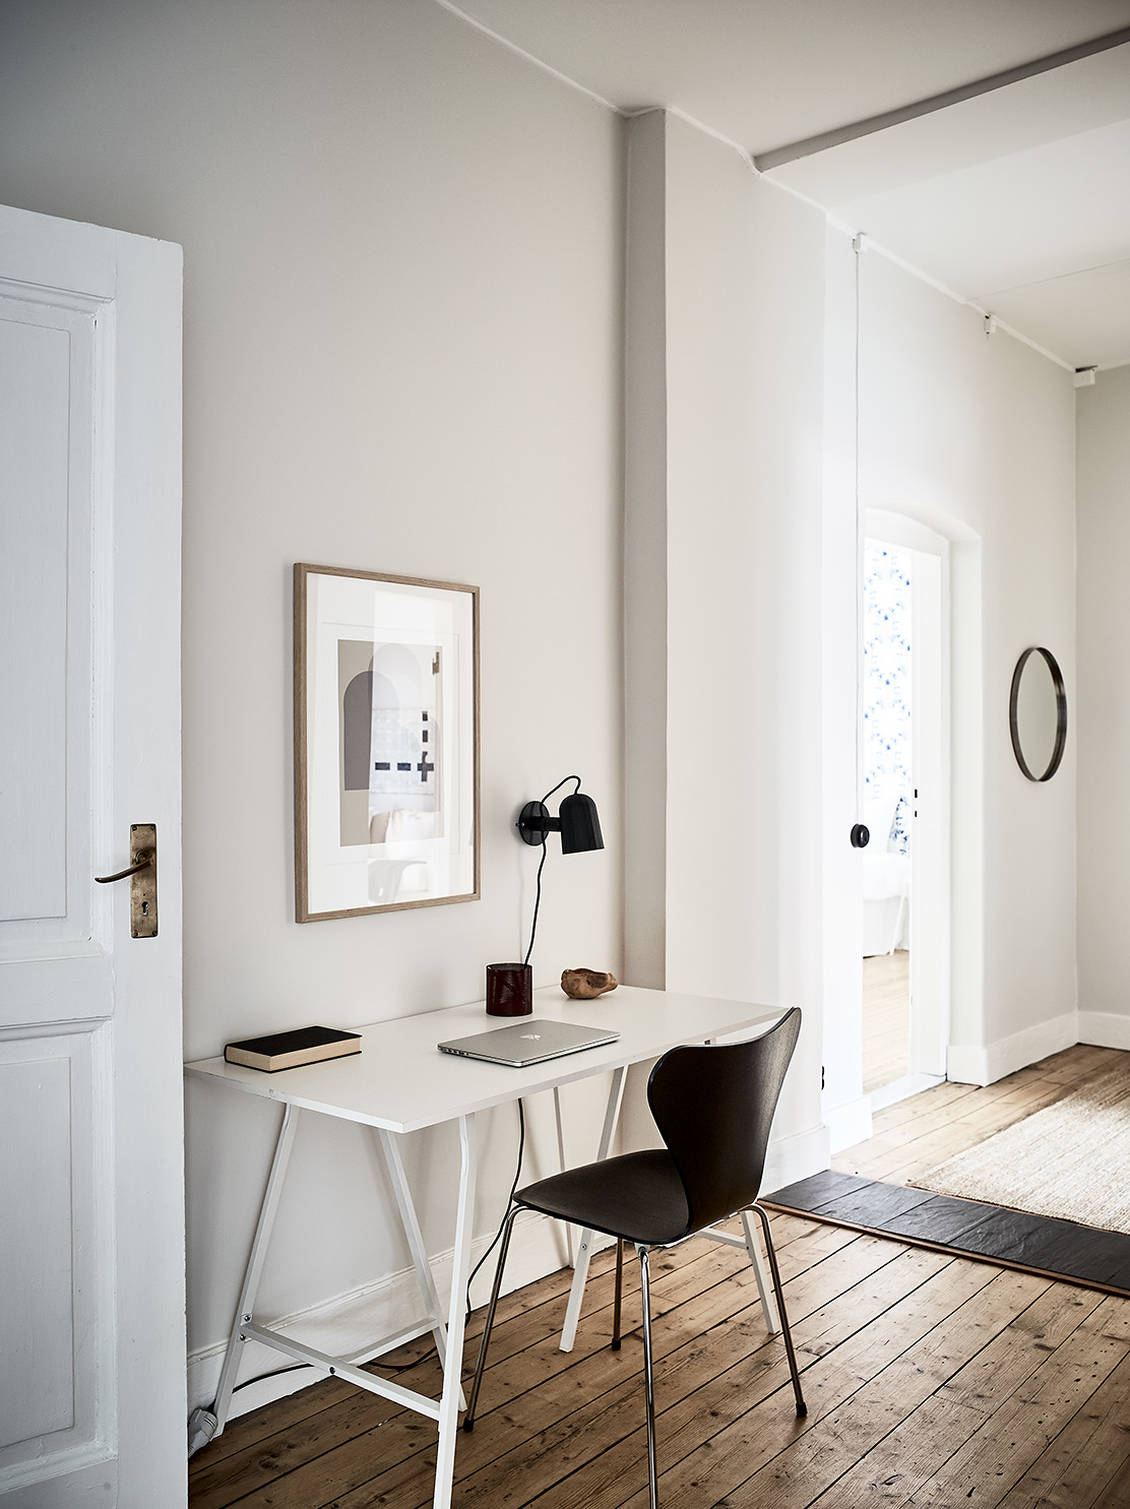 Coco Lapine Design The Little Things She Needs Malmo Navy White Tsn0001342nw52 38 I Think This Warm And Beige Home Look So Very Cozy Inviting Black Accent Pieces In Both Furniture Textiles Give Interior A Bit More Of